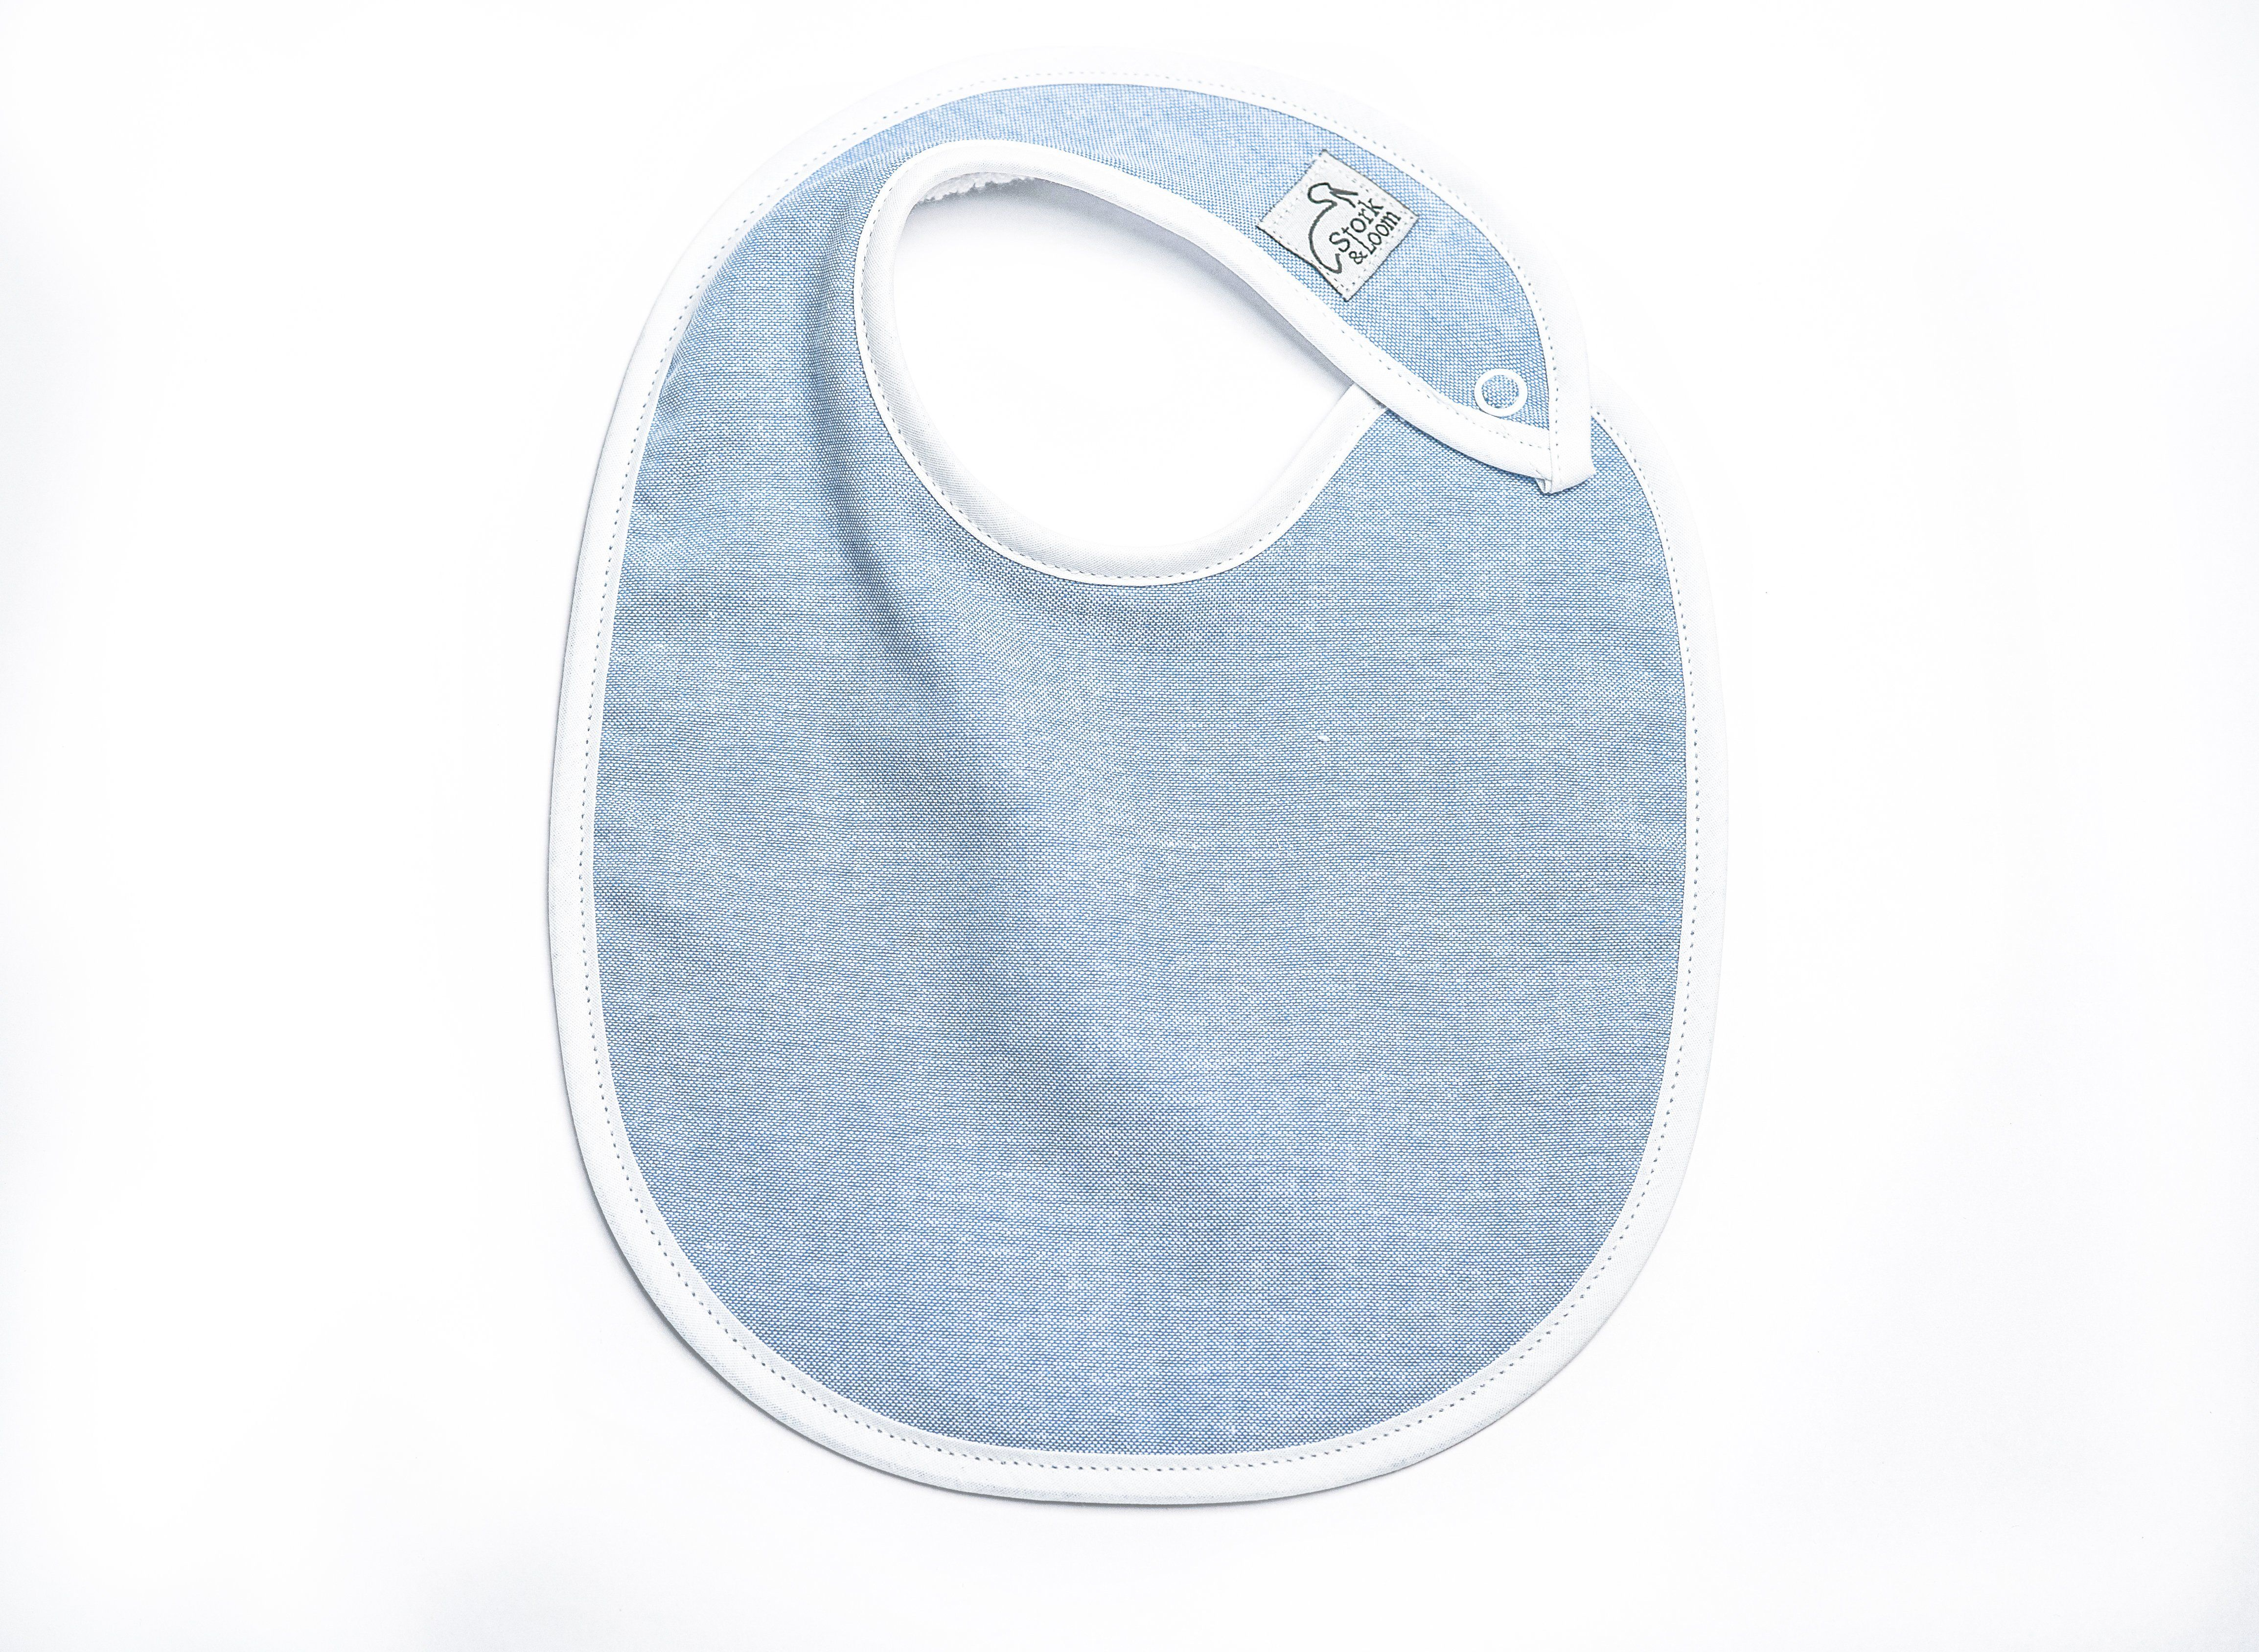 Soft and AbsorbentOur classic bibs are made with 100% soft cotton terry cloth backing making them super absorbent and comfortable for your baby. Nickel-Free SnapsOur nickel-free snaps are easy to put on and safe on your baby's skin. Velcro can scratch sensitive skin and snag on items in the wash, but our snaps are easy, safe, and stay put on a pulling baby. Stylish and ModernOur designs are cute, timeless, and modern to compliment all your baby's adorable outfits. Materials: nickel-free snaps, 1